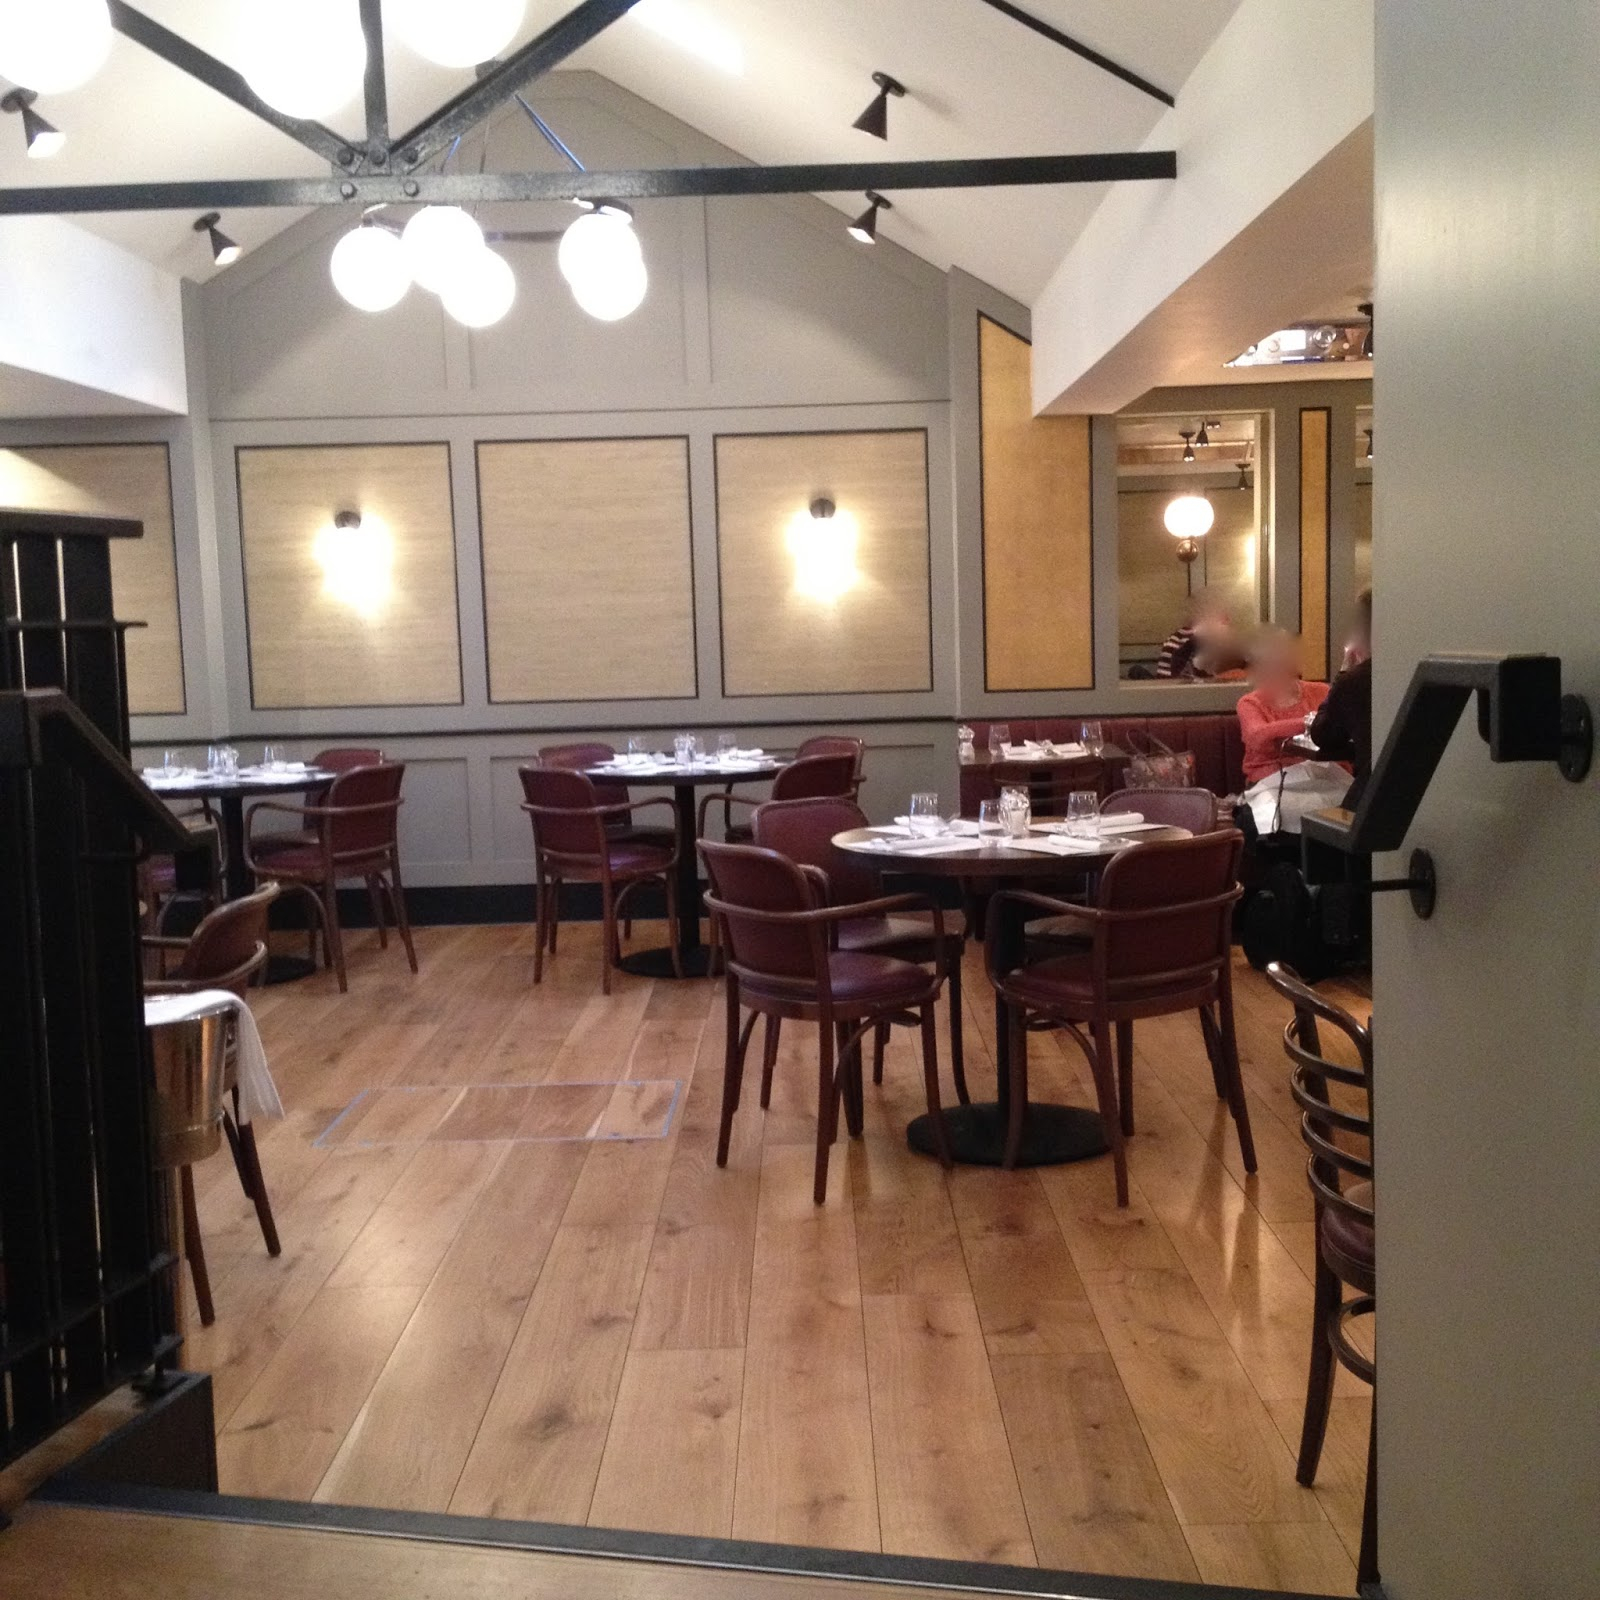 Amazing The Fry Up Inspector: Cote Brasserie - Norwich regarding Review The Dining Rooms Norwich